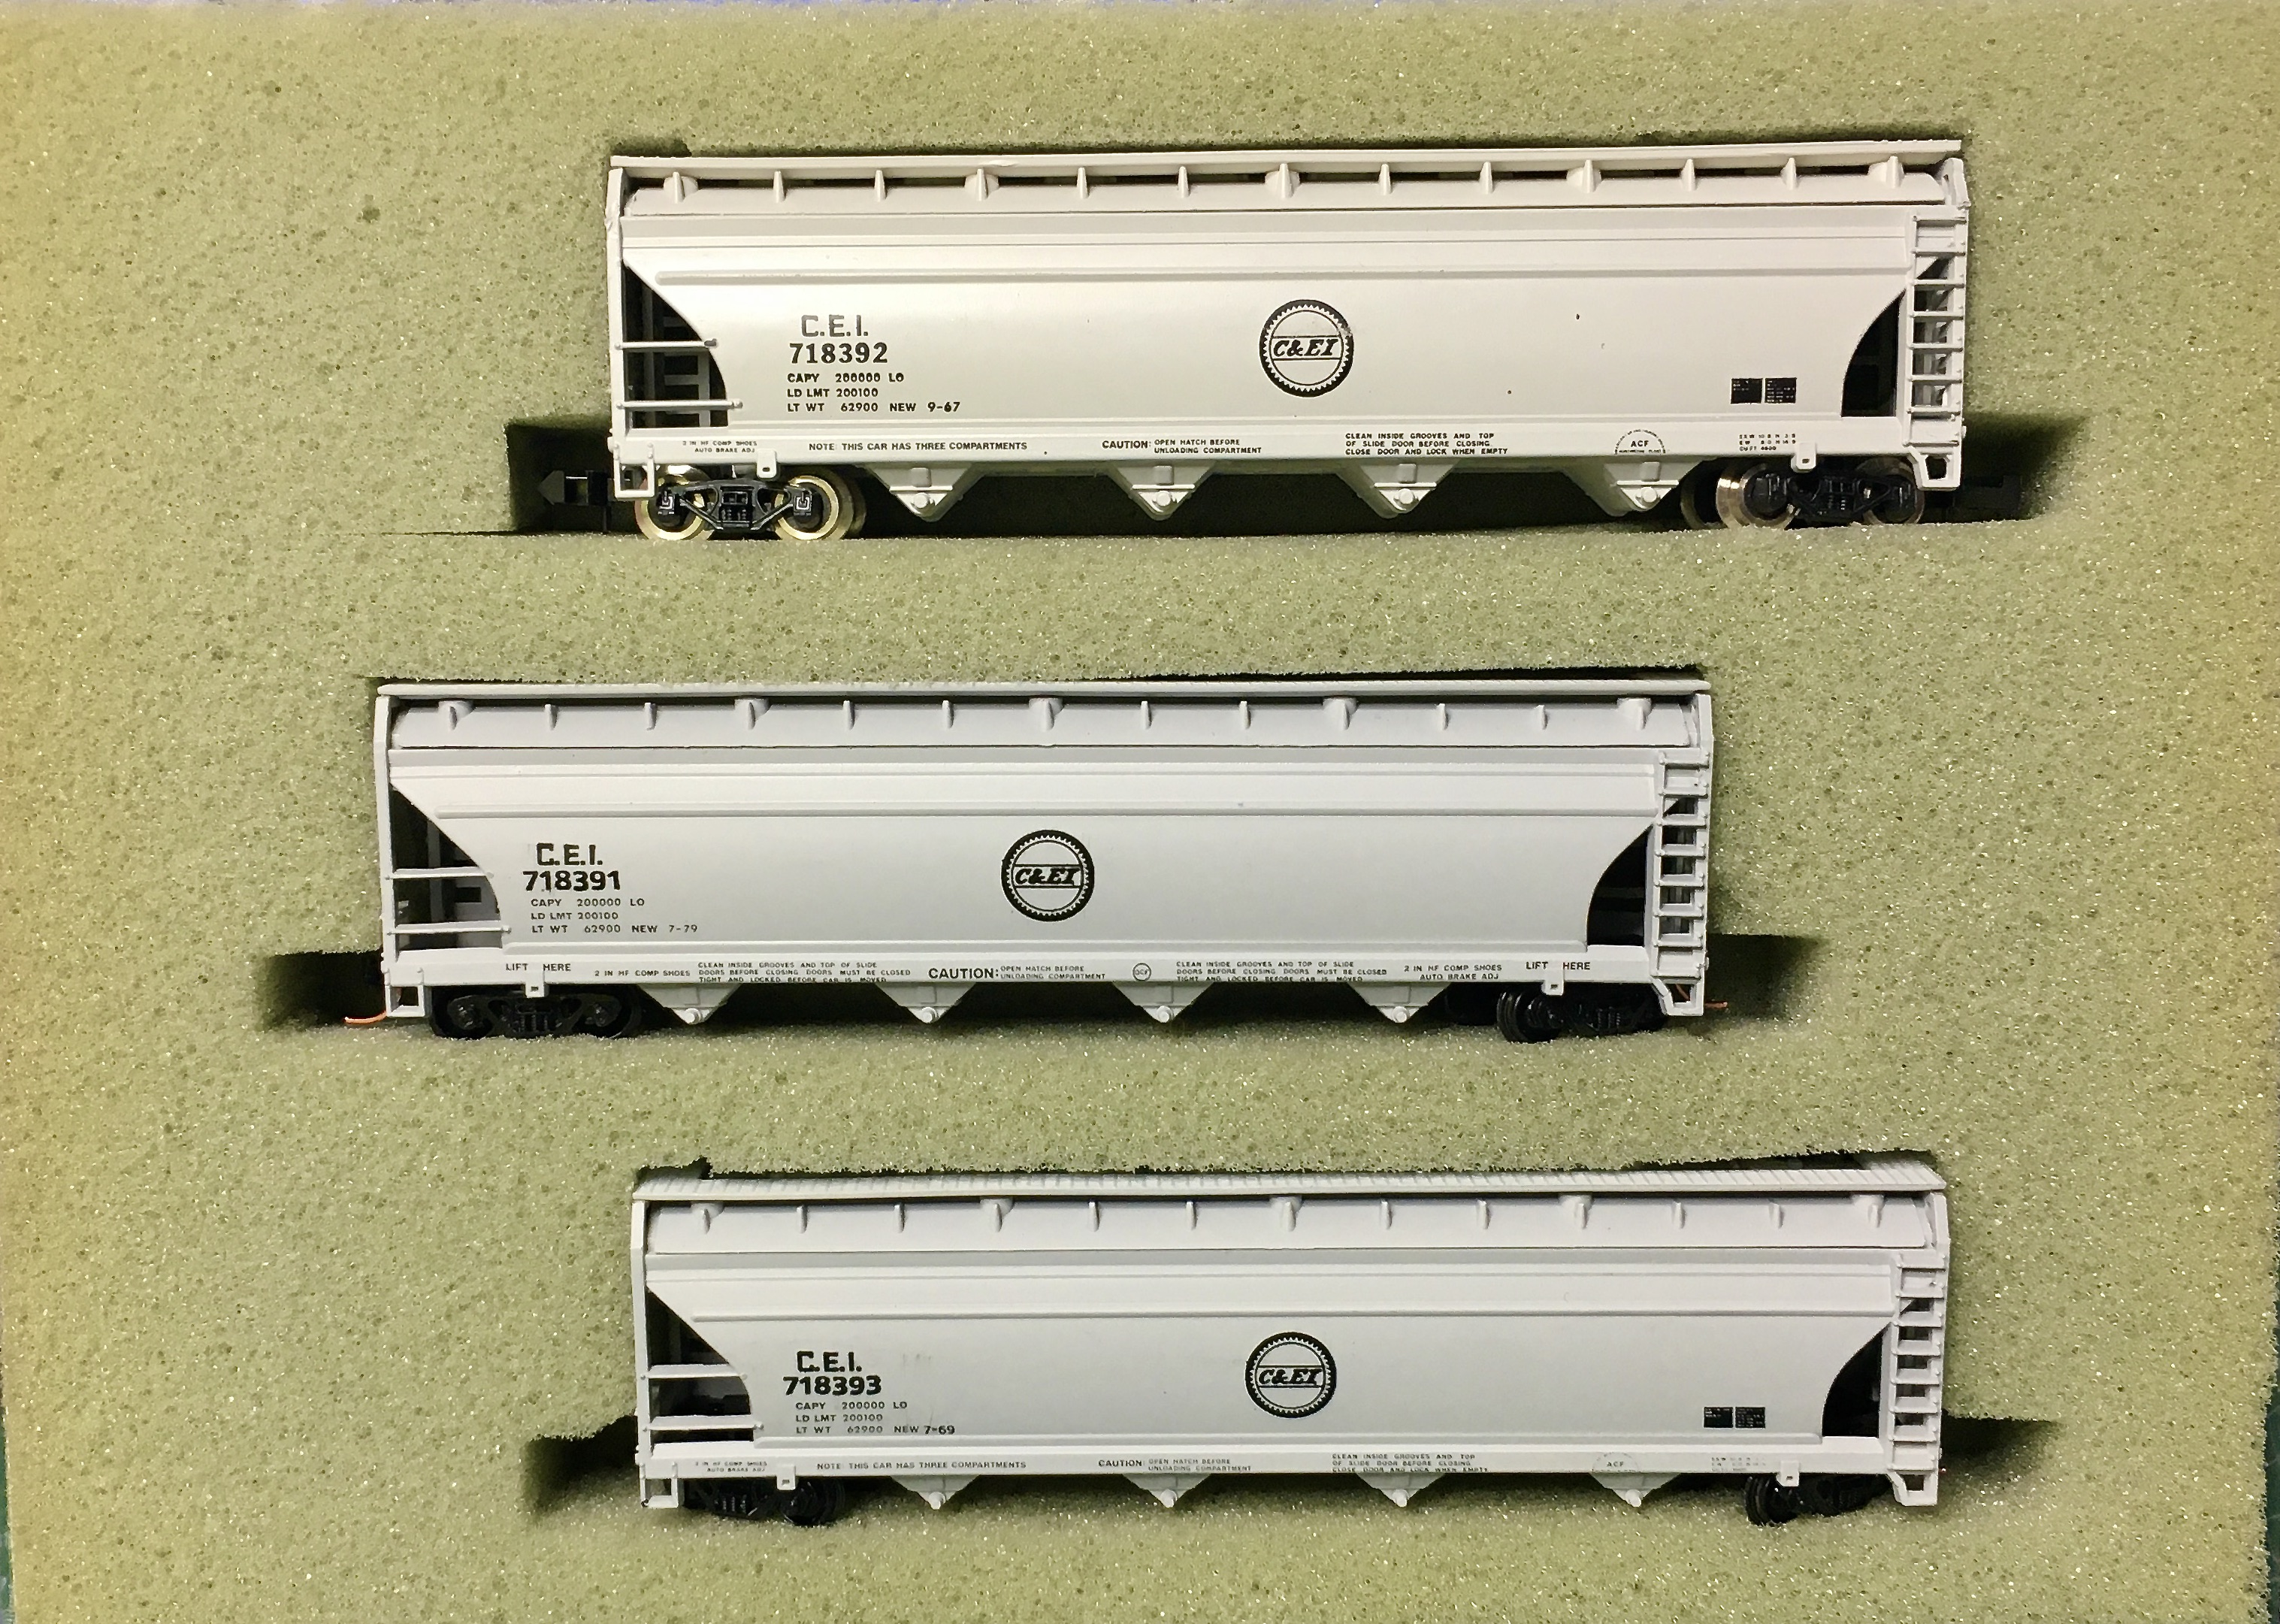 N Scale - N Hobby Distributing - 59 - Covered Hopper, 4-Bay, ACF Centerflow - Chicago & Eastern Illinois - 718391, 718392, 718393